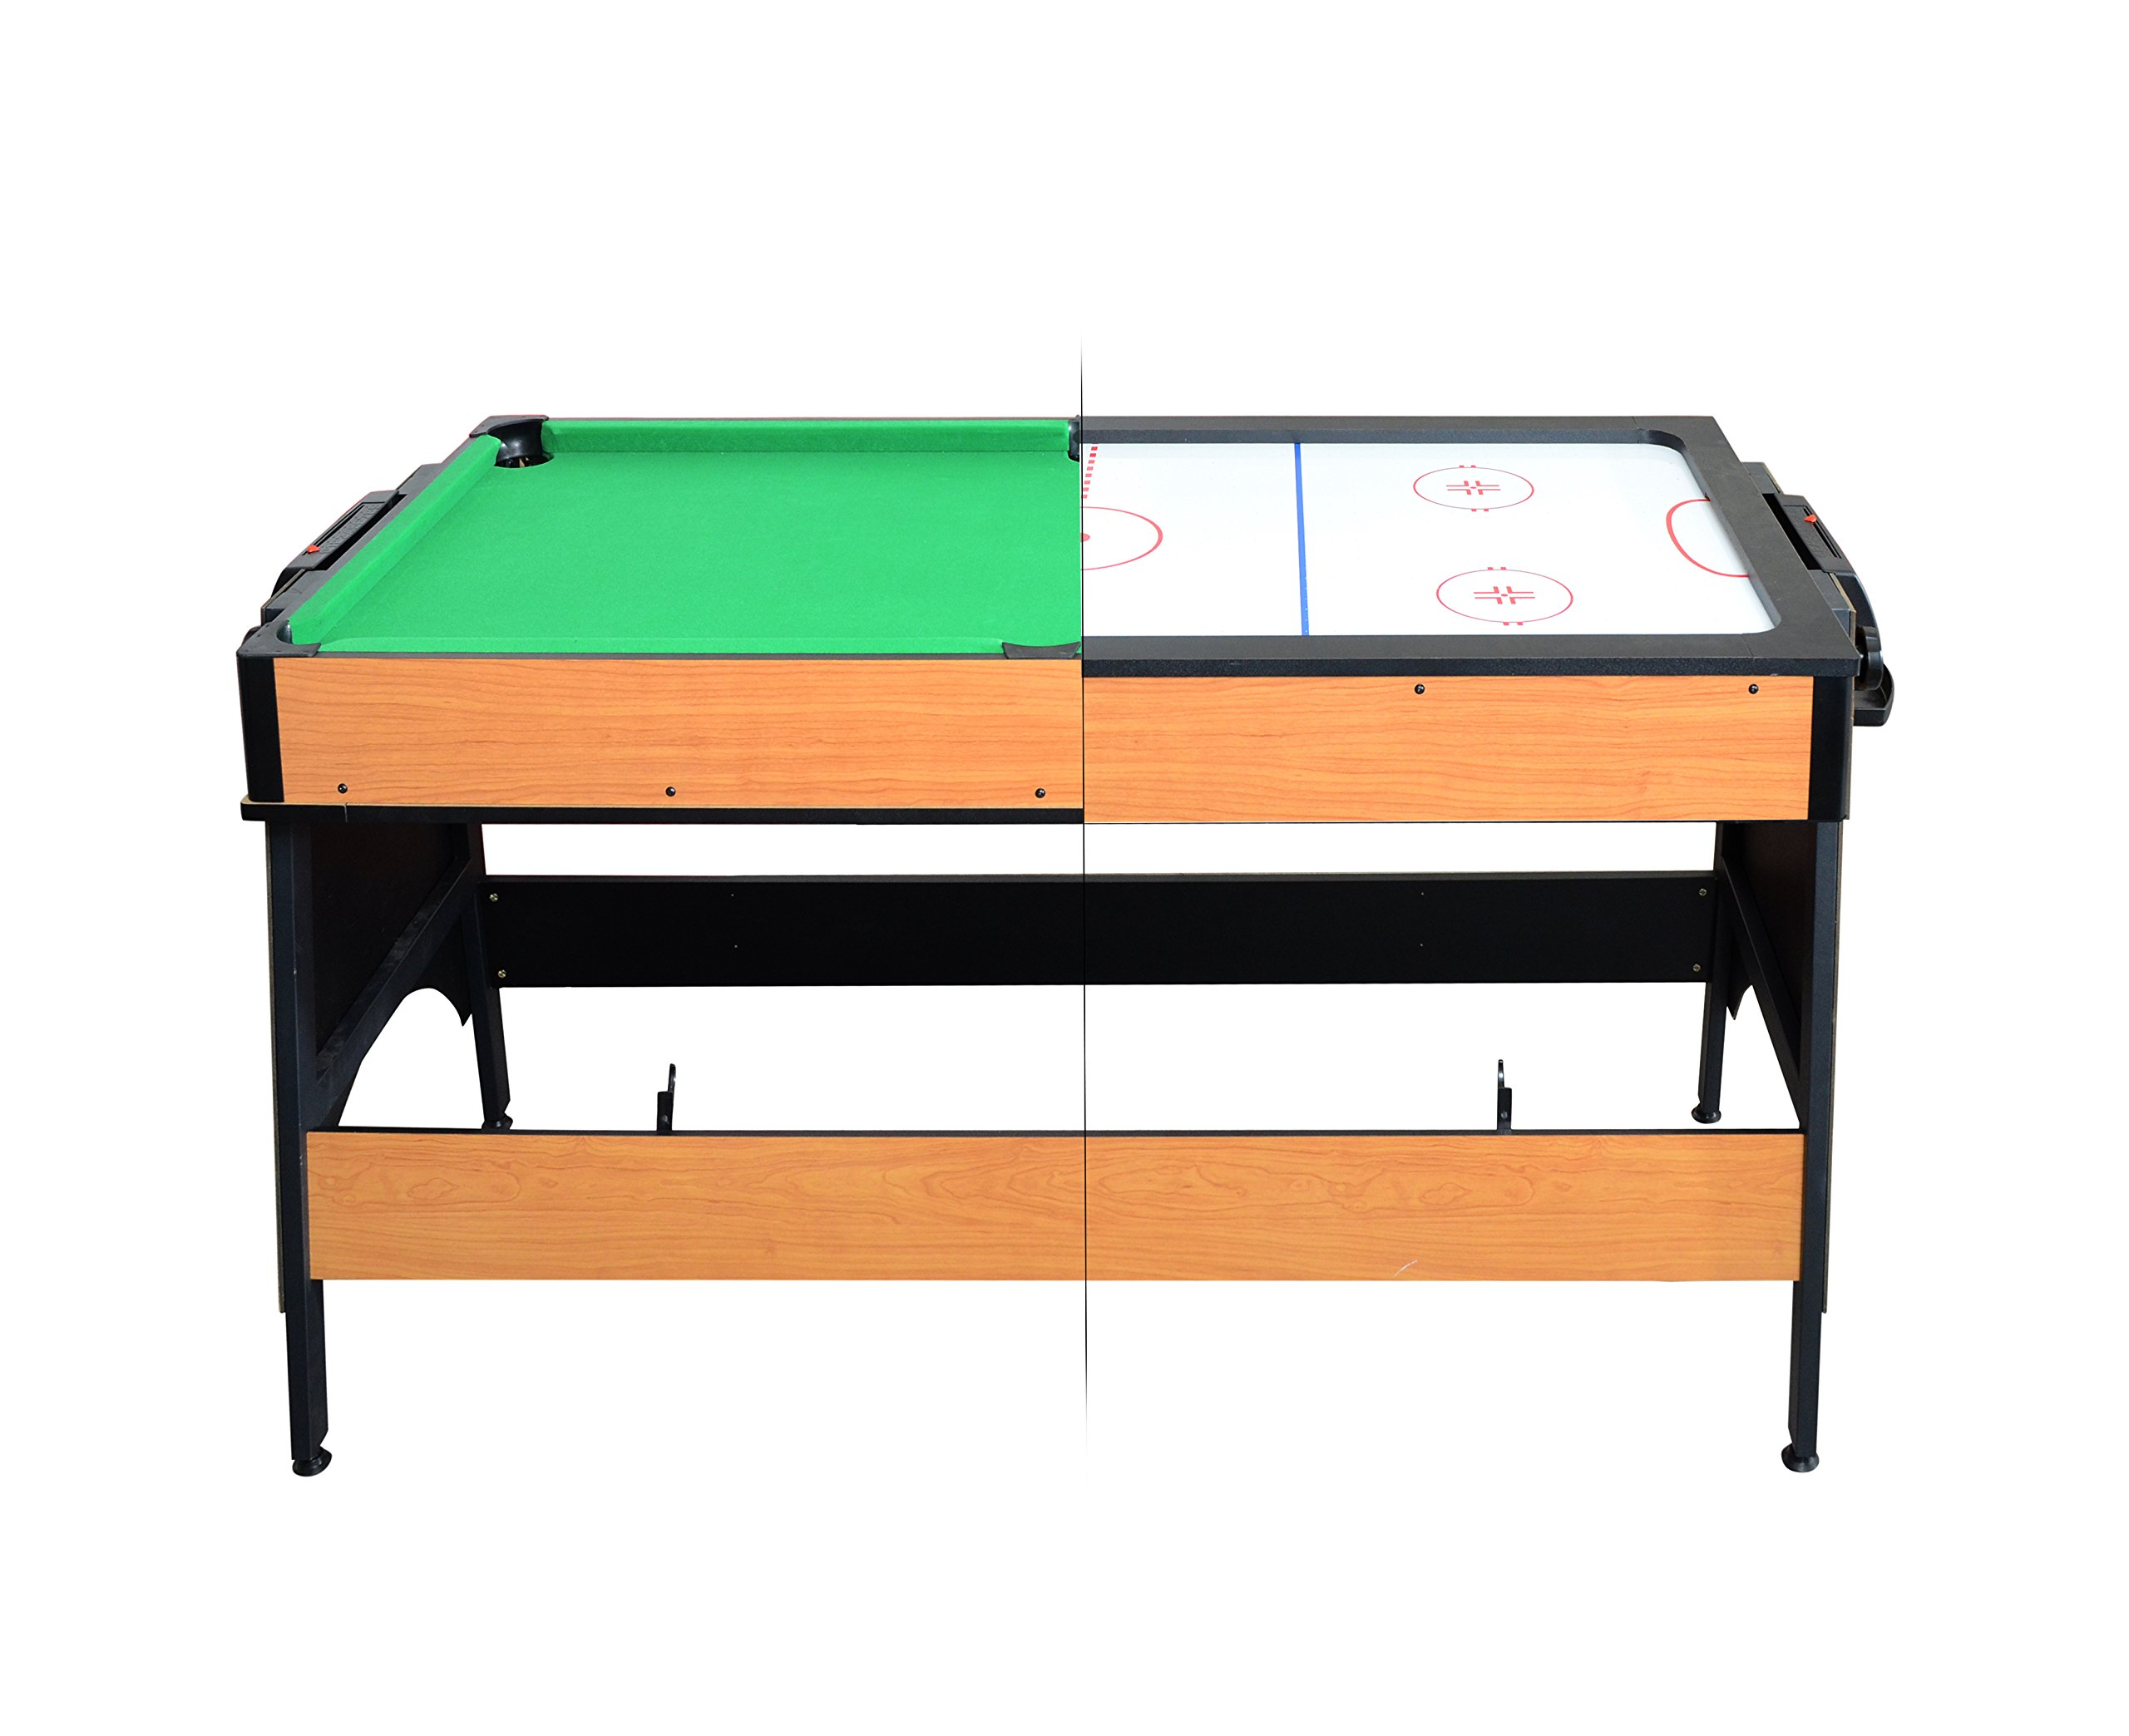 Milliard Dual Billiard and Air Hockey Table, 2 in 1 Midsize Game Table (55in x 26in) by Milliard